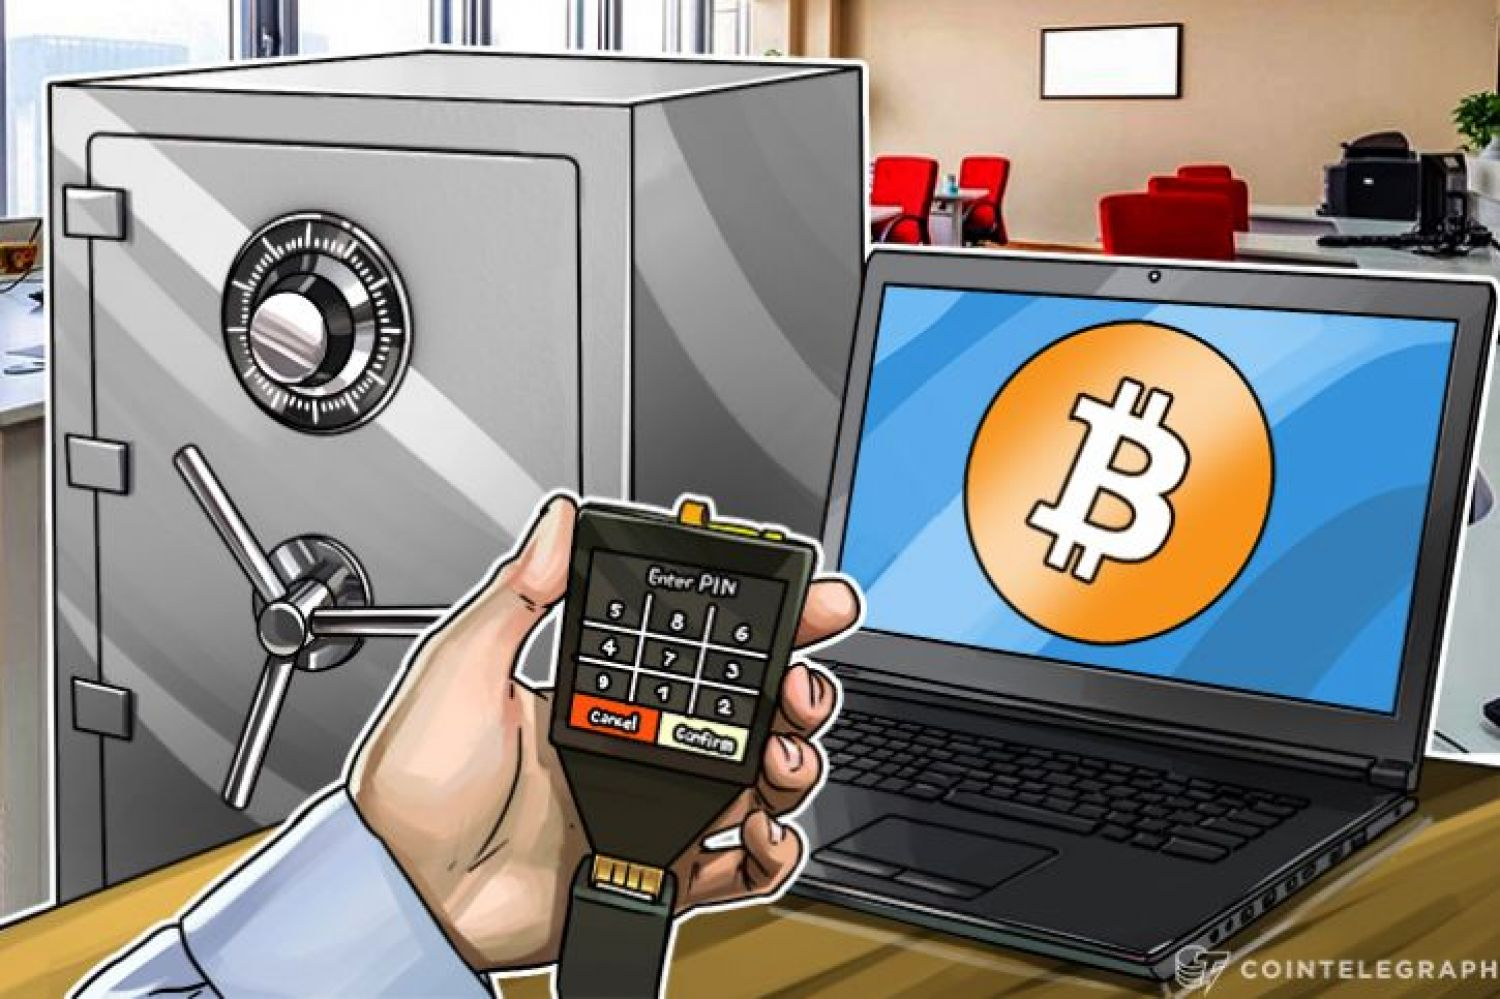 Experts Claim Blockchain Technology Can Revolutionize Security Industry